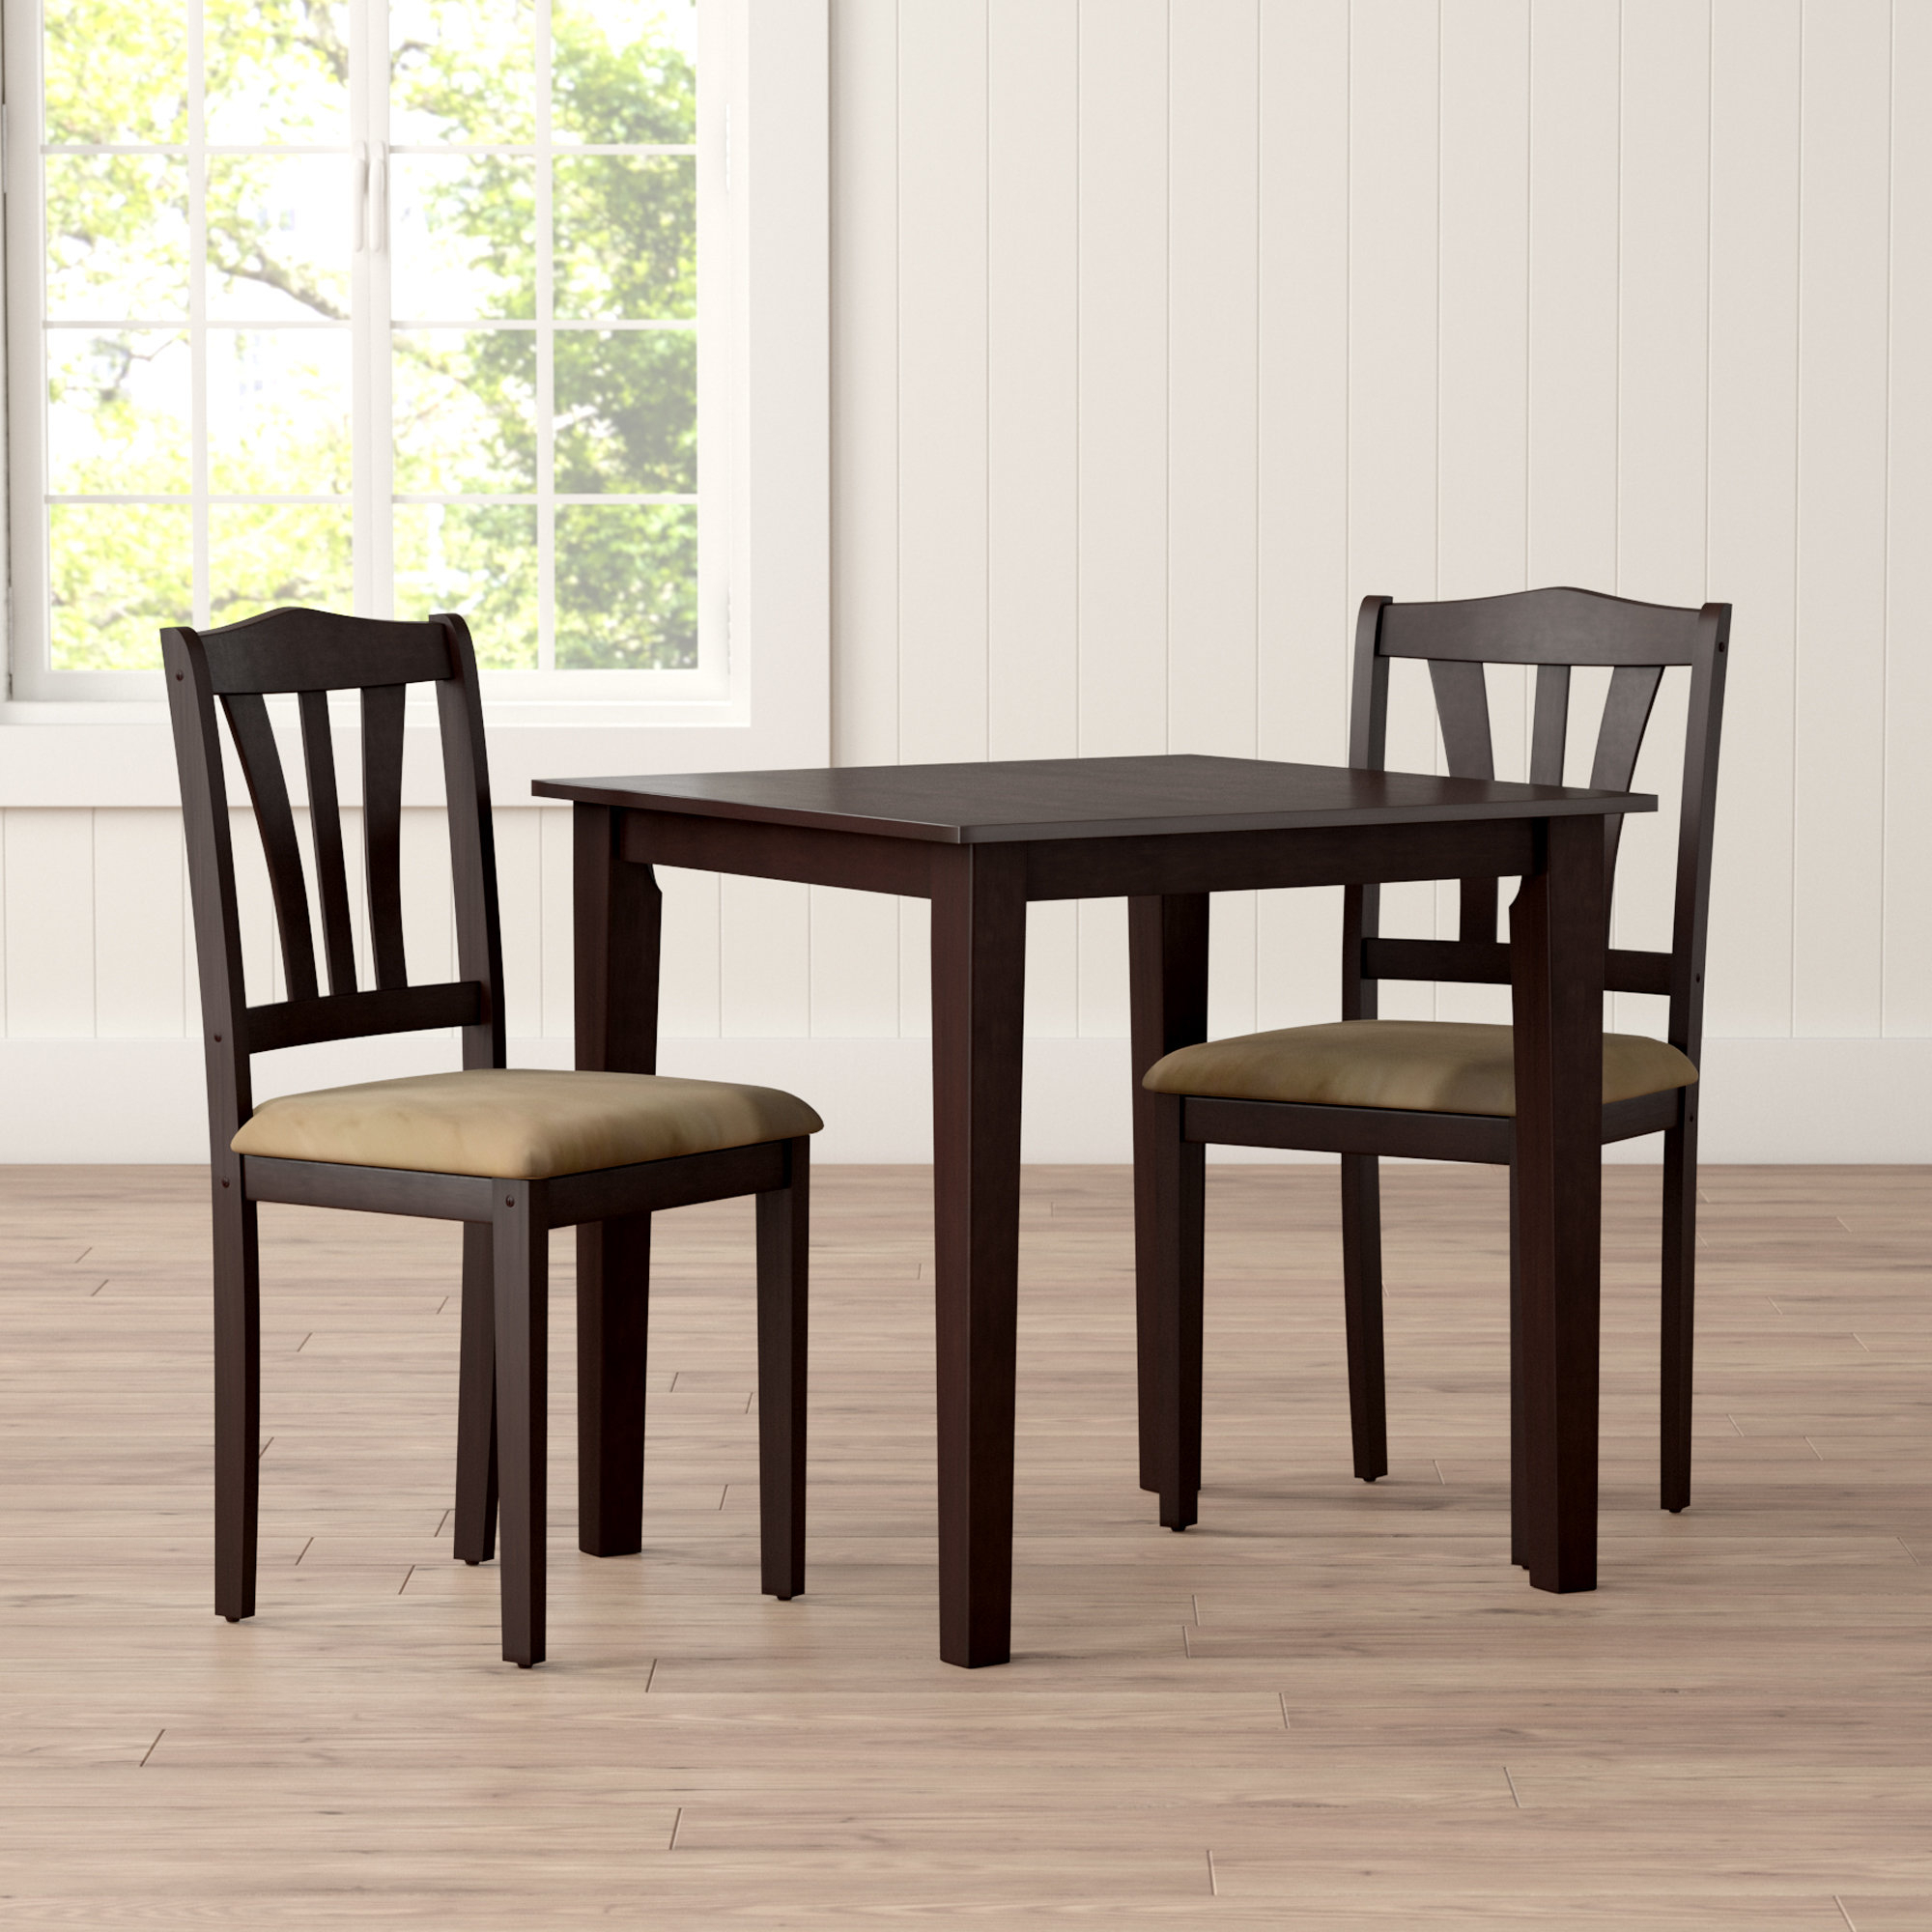 Dinah 3 Piece Dining Set Intended For Favorite Tenney 3 Piece Counter Height Dining Sets (View 4 of 20)